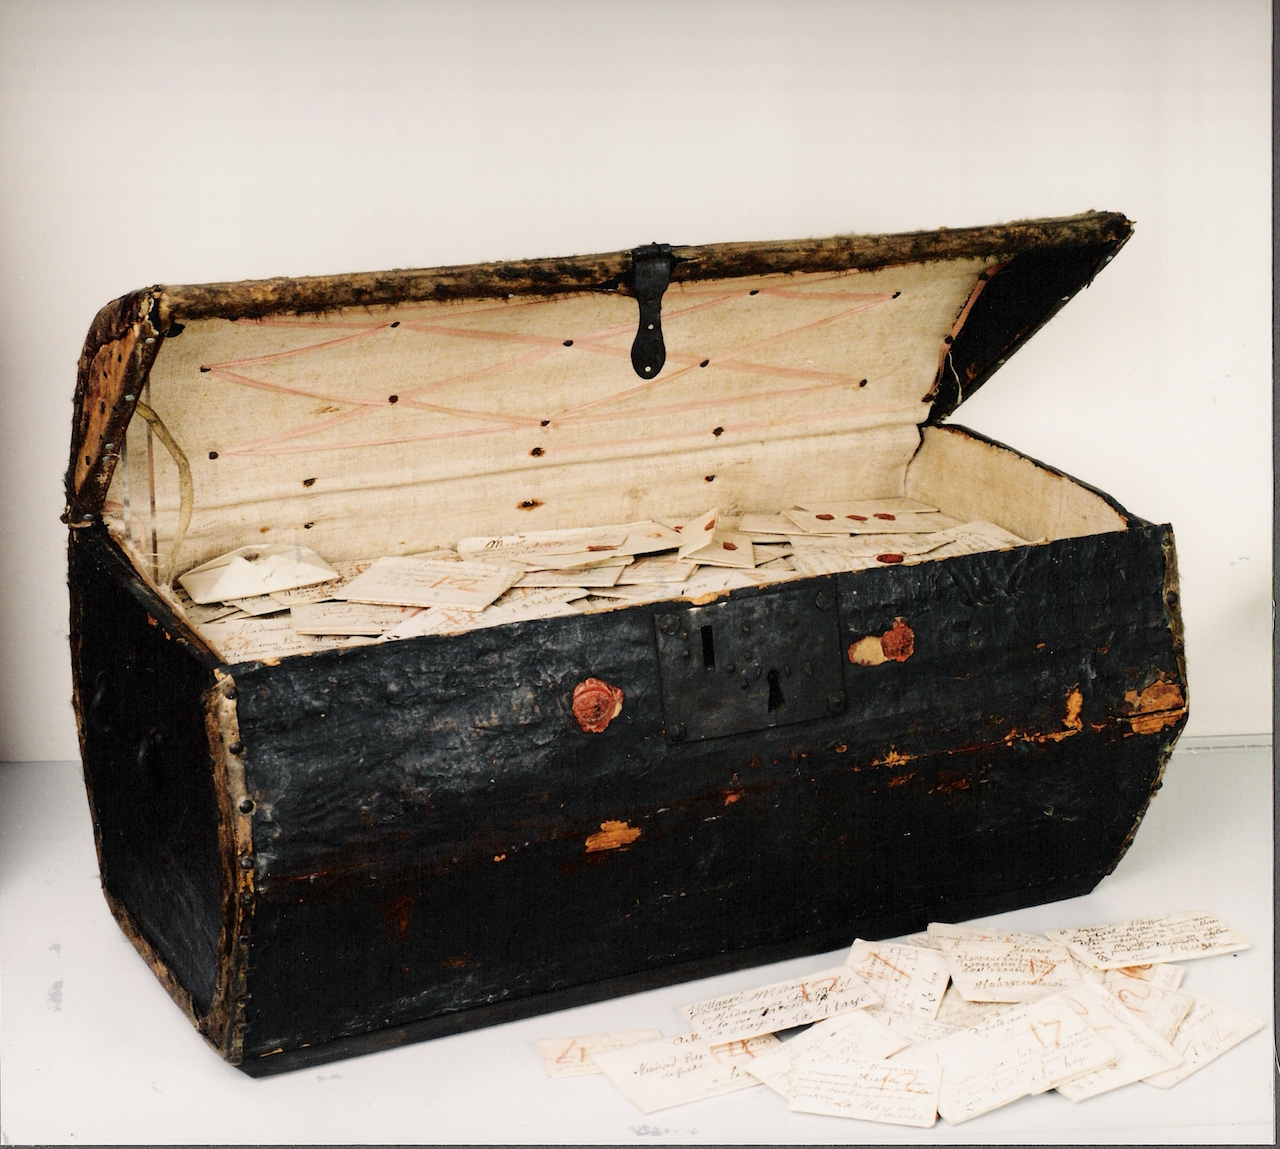 The trunk in which the undelivered letters and postmaster's administration were kept. (© Signed, Sealed & Undelivered Team, 2015. Courtesy of the Museum voor Communicatie, The Hague, The Netherlands)